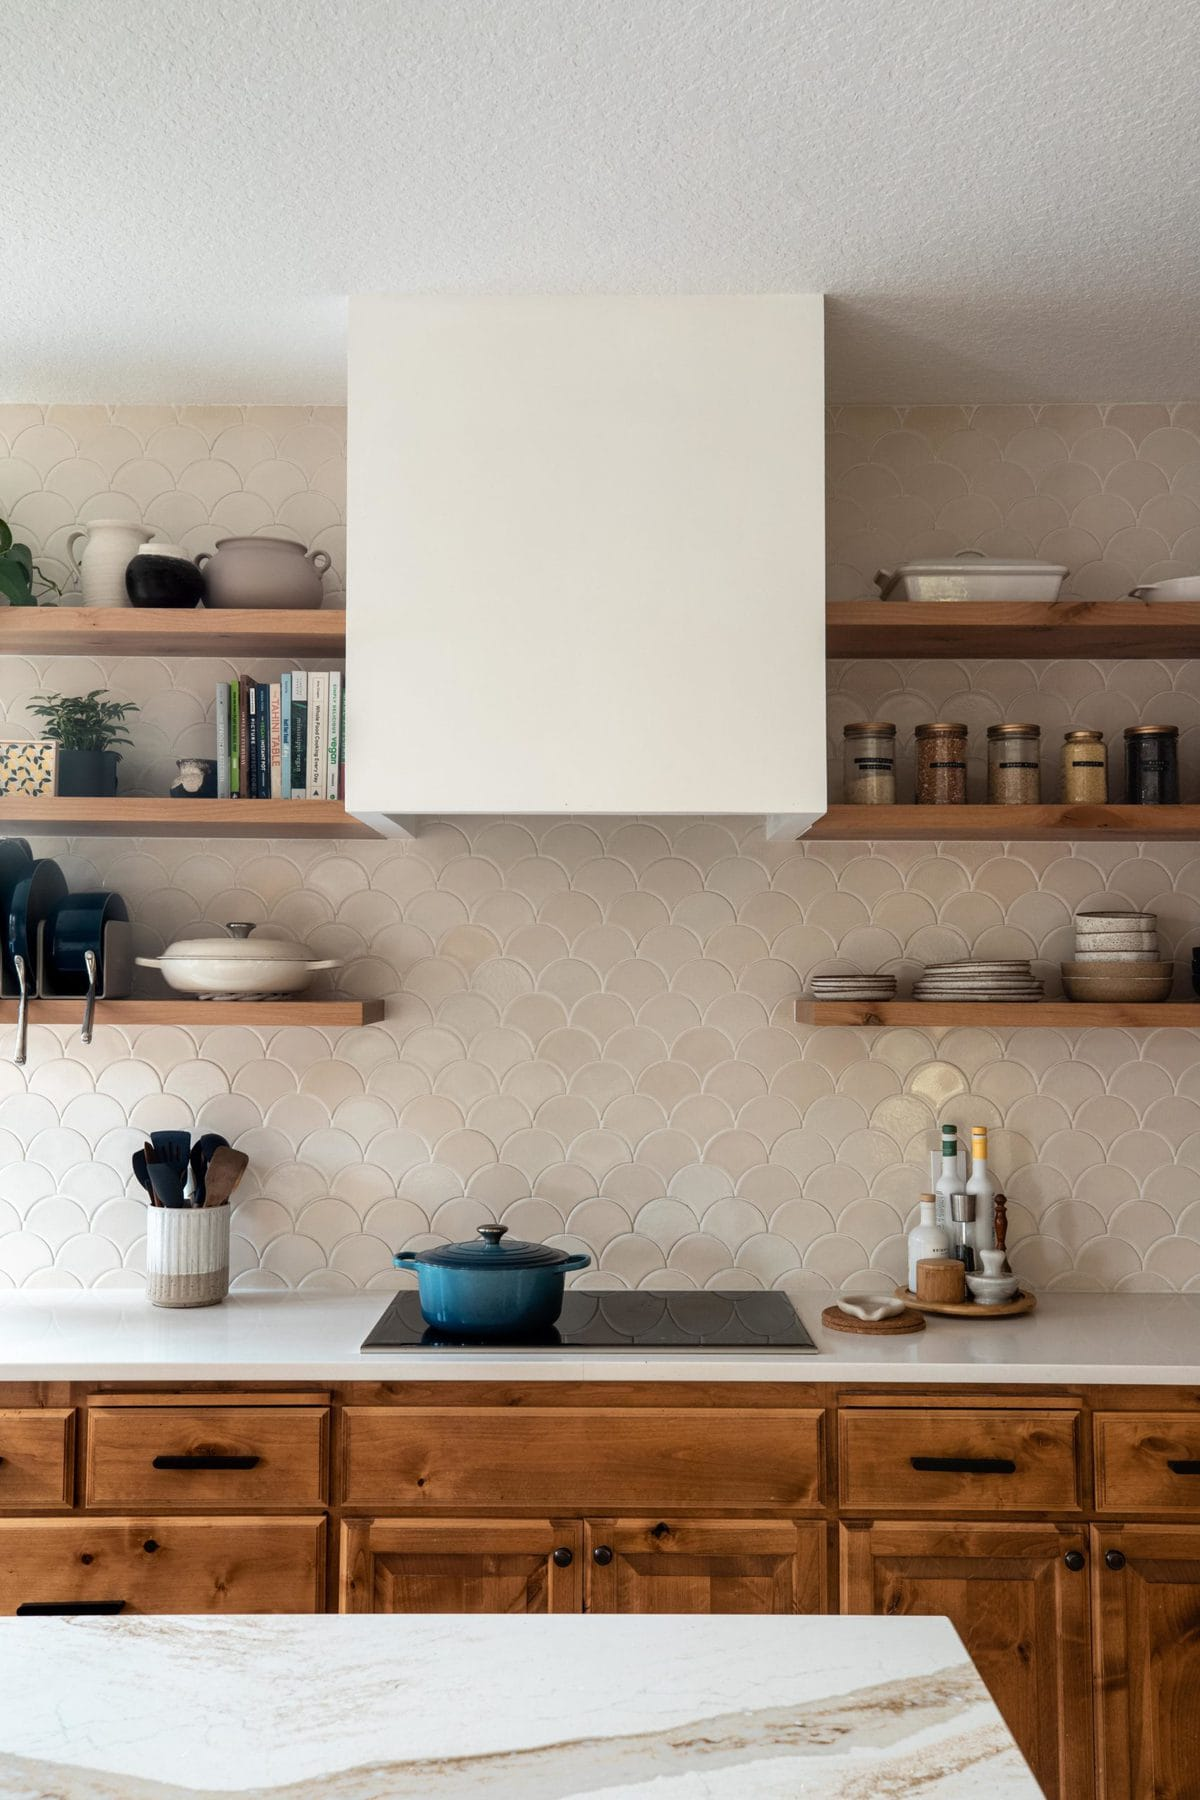 Cozy warm kitchen show with a white vent hood, tile backsplash, and open shelving